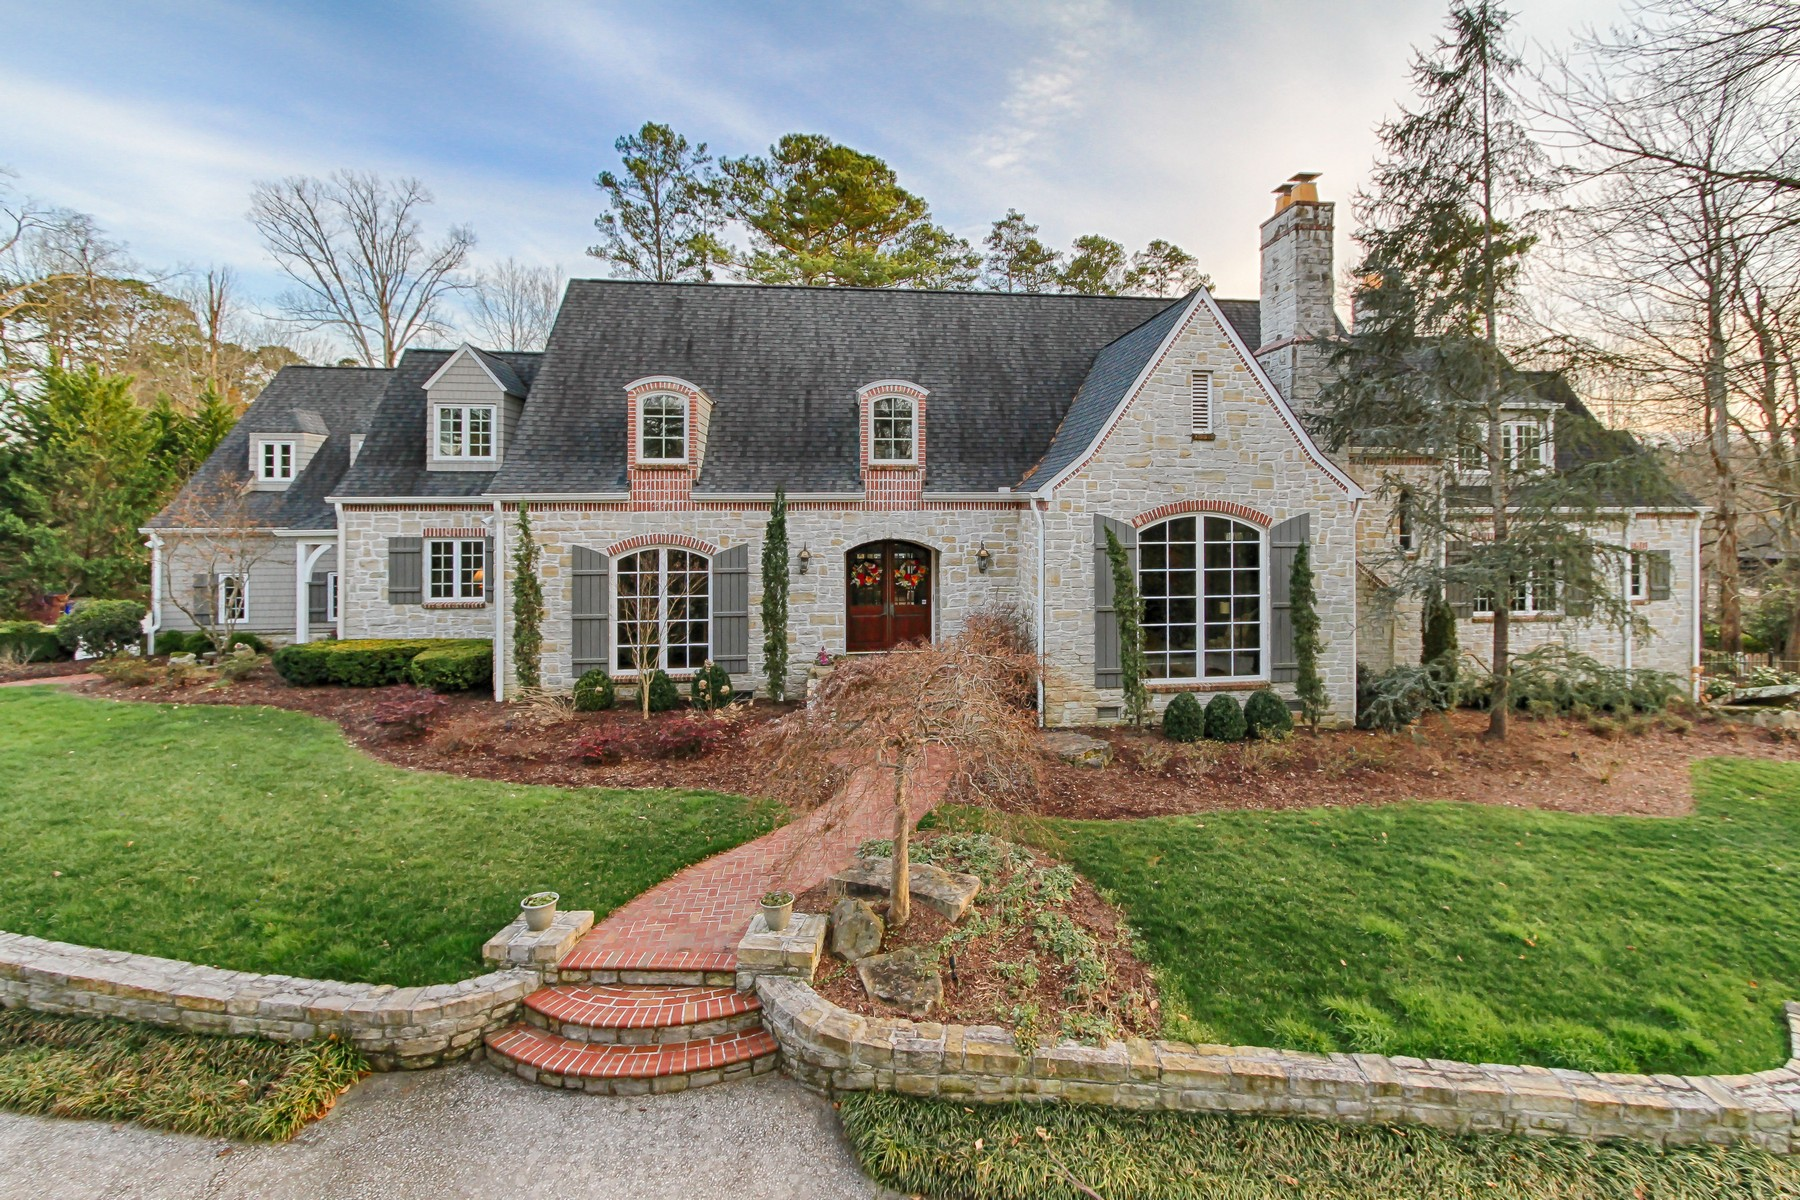 Single Family Home for Sale at Elegant Old-World Charm 5246 Bent River Boulevard Knoxville, Tennessee 37919 United States